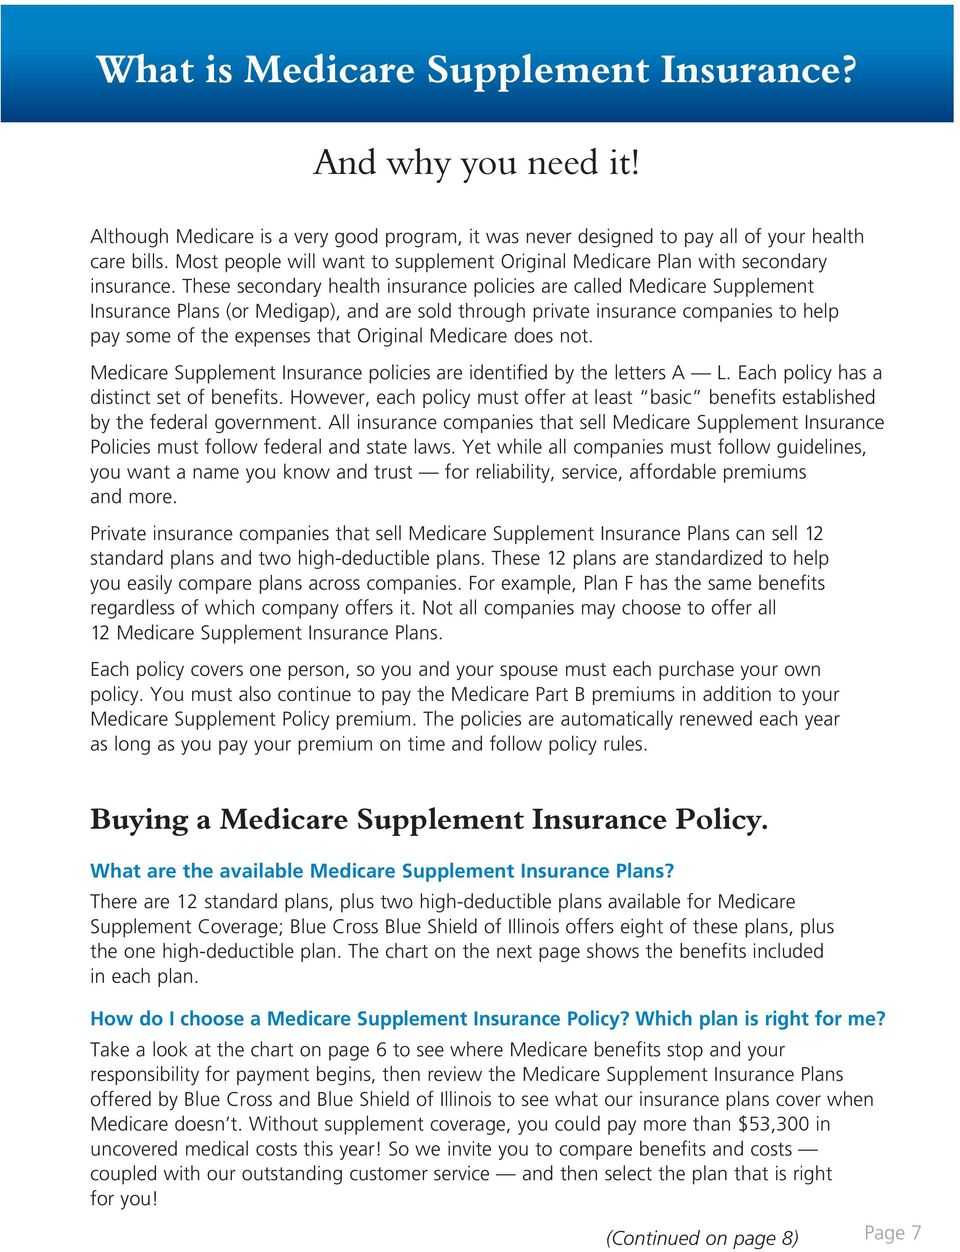 These secondary health insurance policies are called Medicare Supplement Insurance Plans (or Medigap), and are sold through private insurance companies to help pay some of the expenses that Original